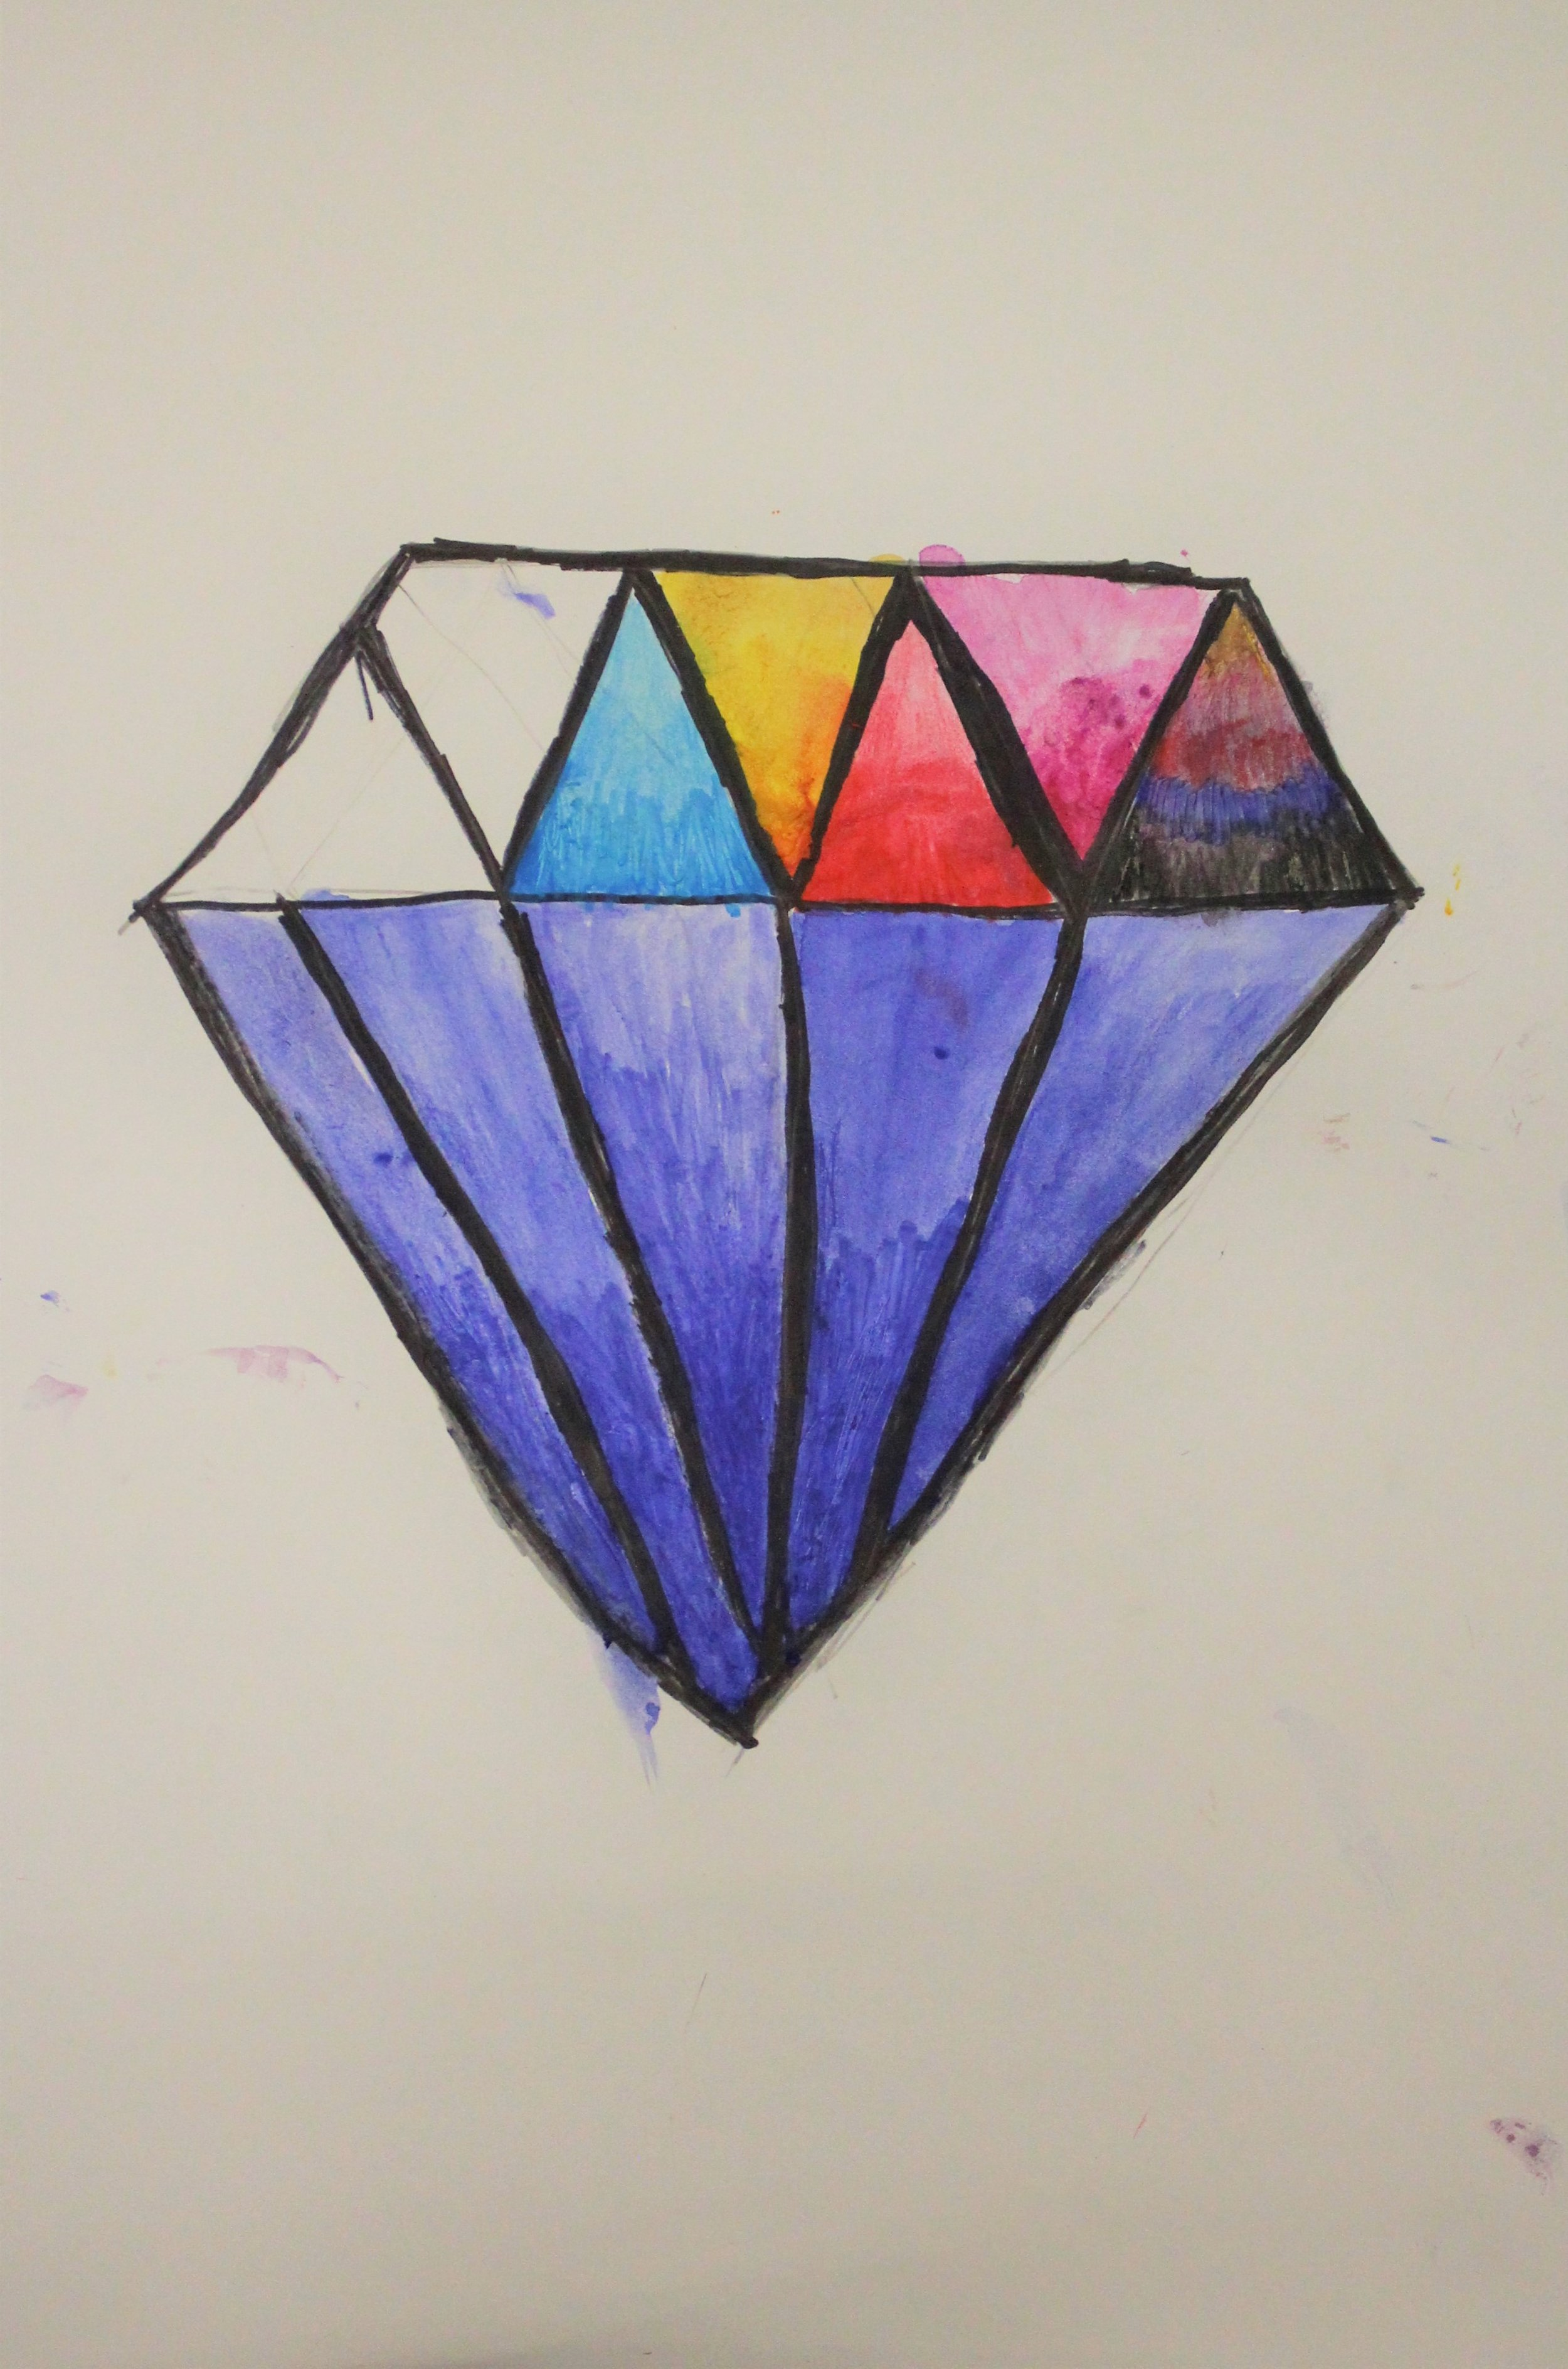 Grade 4 Rocks and Crystals exploring Value: Abbigail C.(Work in Progress)